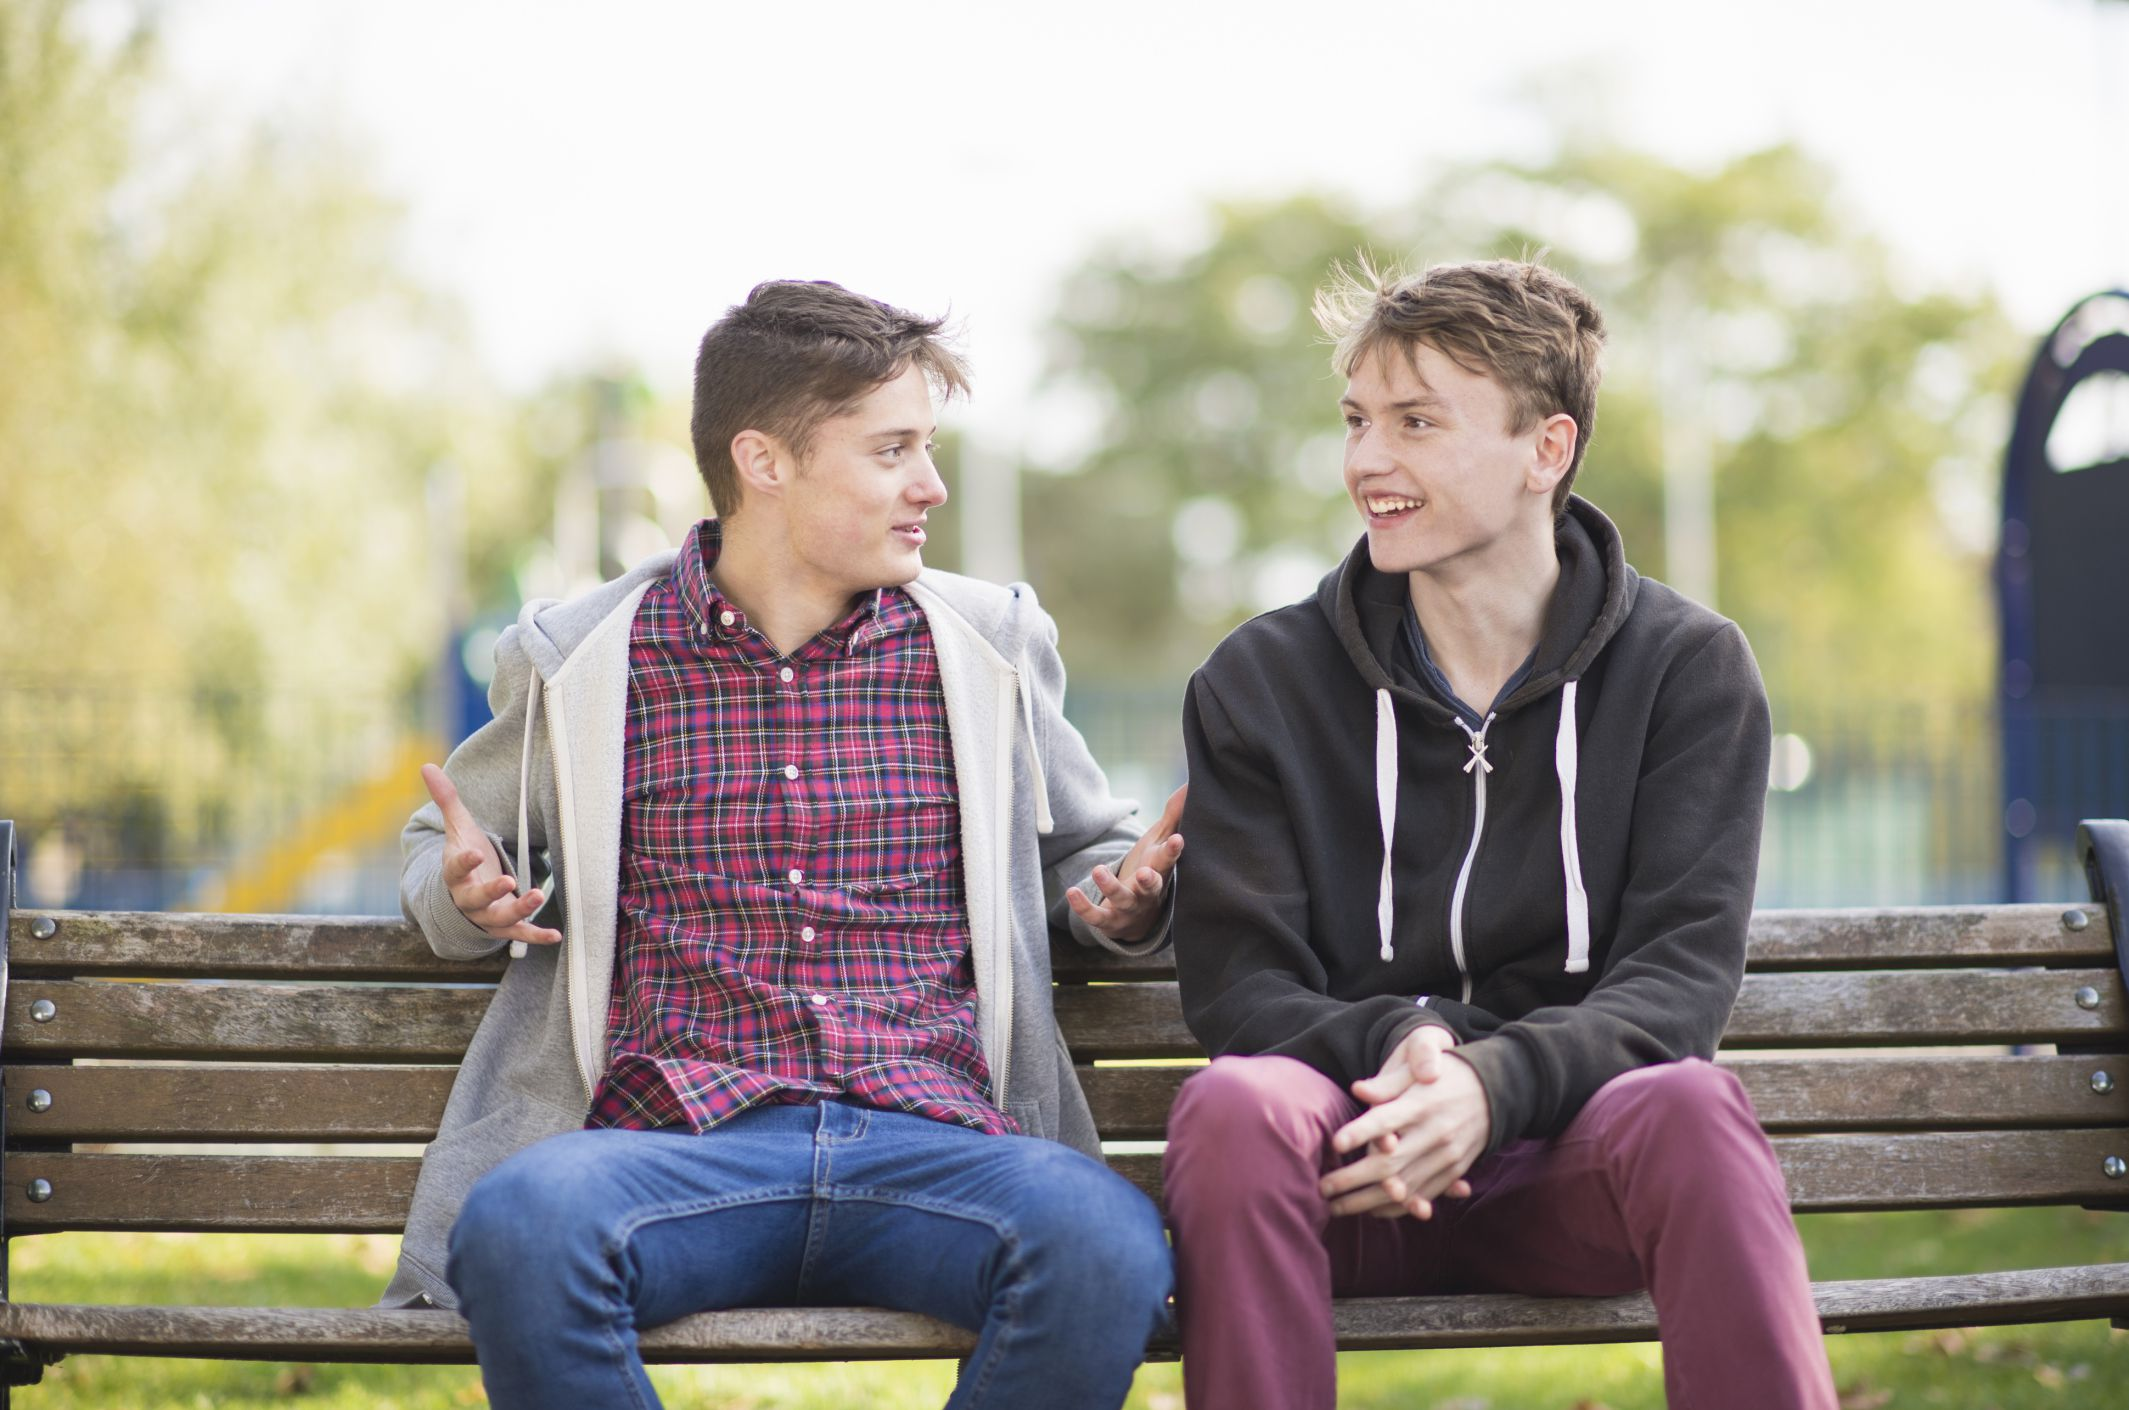 What To Know About Puberty And Voice Changes For Boys